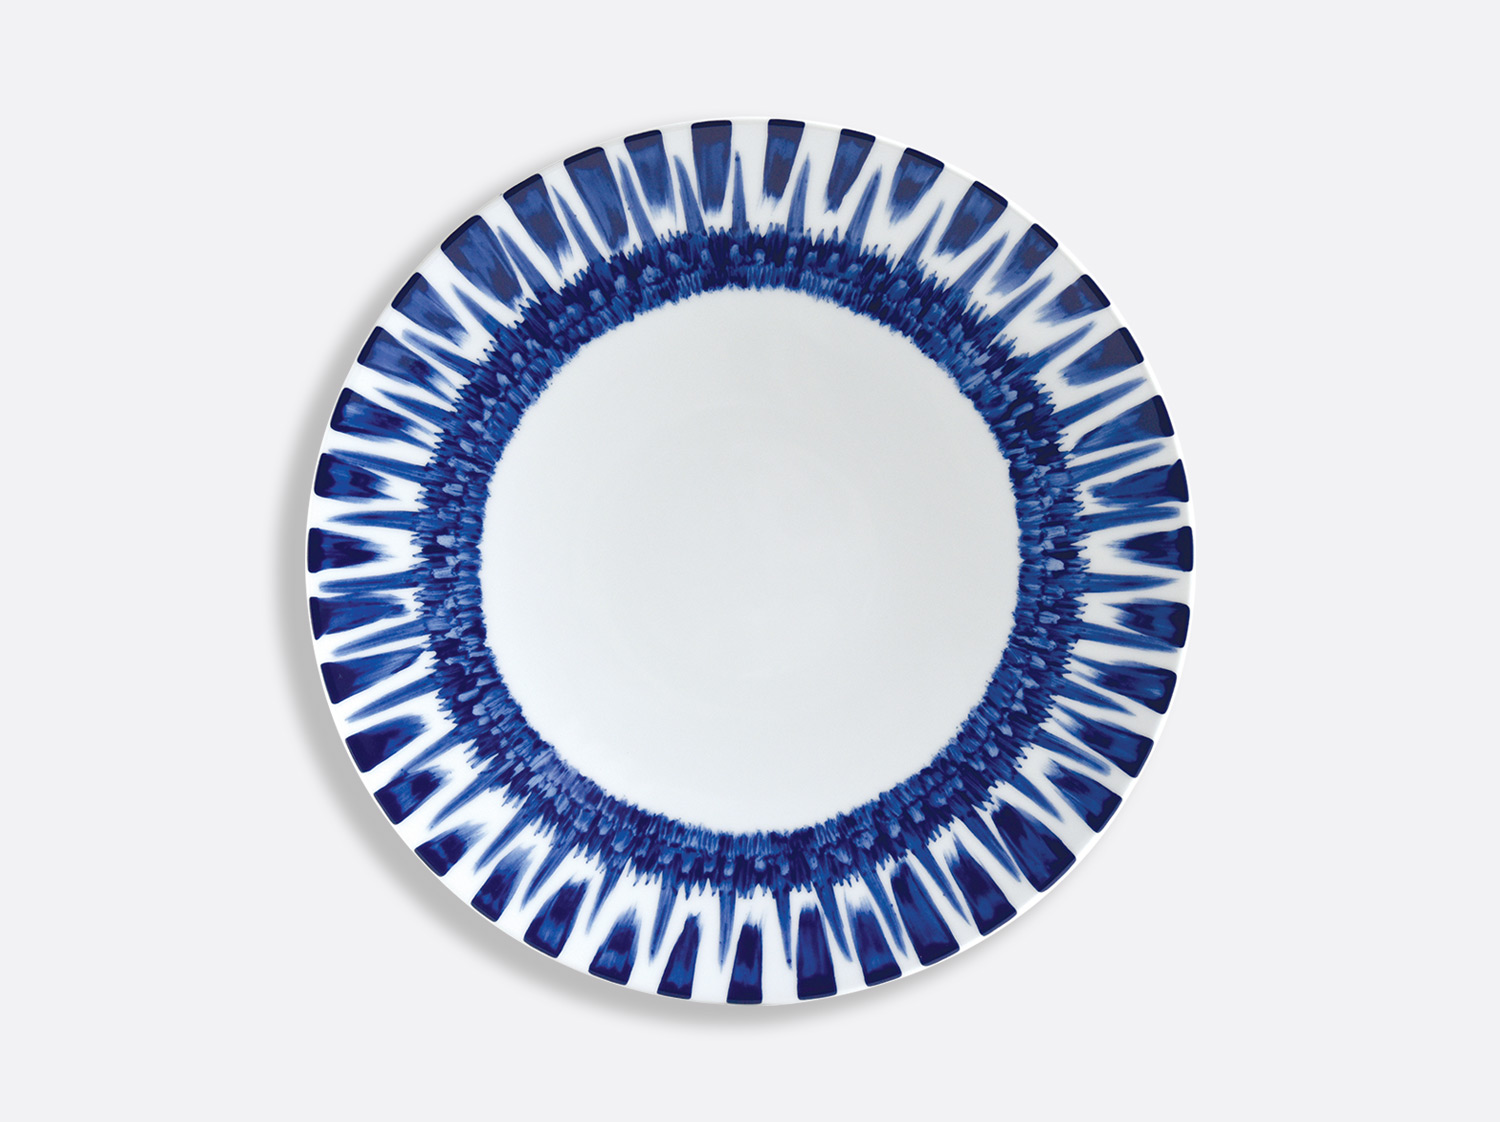 Assiette à dîner 27 cm en porcelaine de la collection IN BLOOM - Zemer Peled Bernardaud